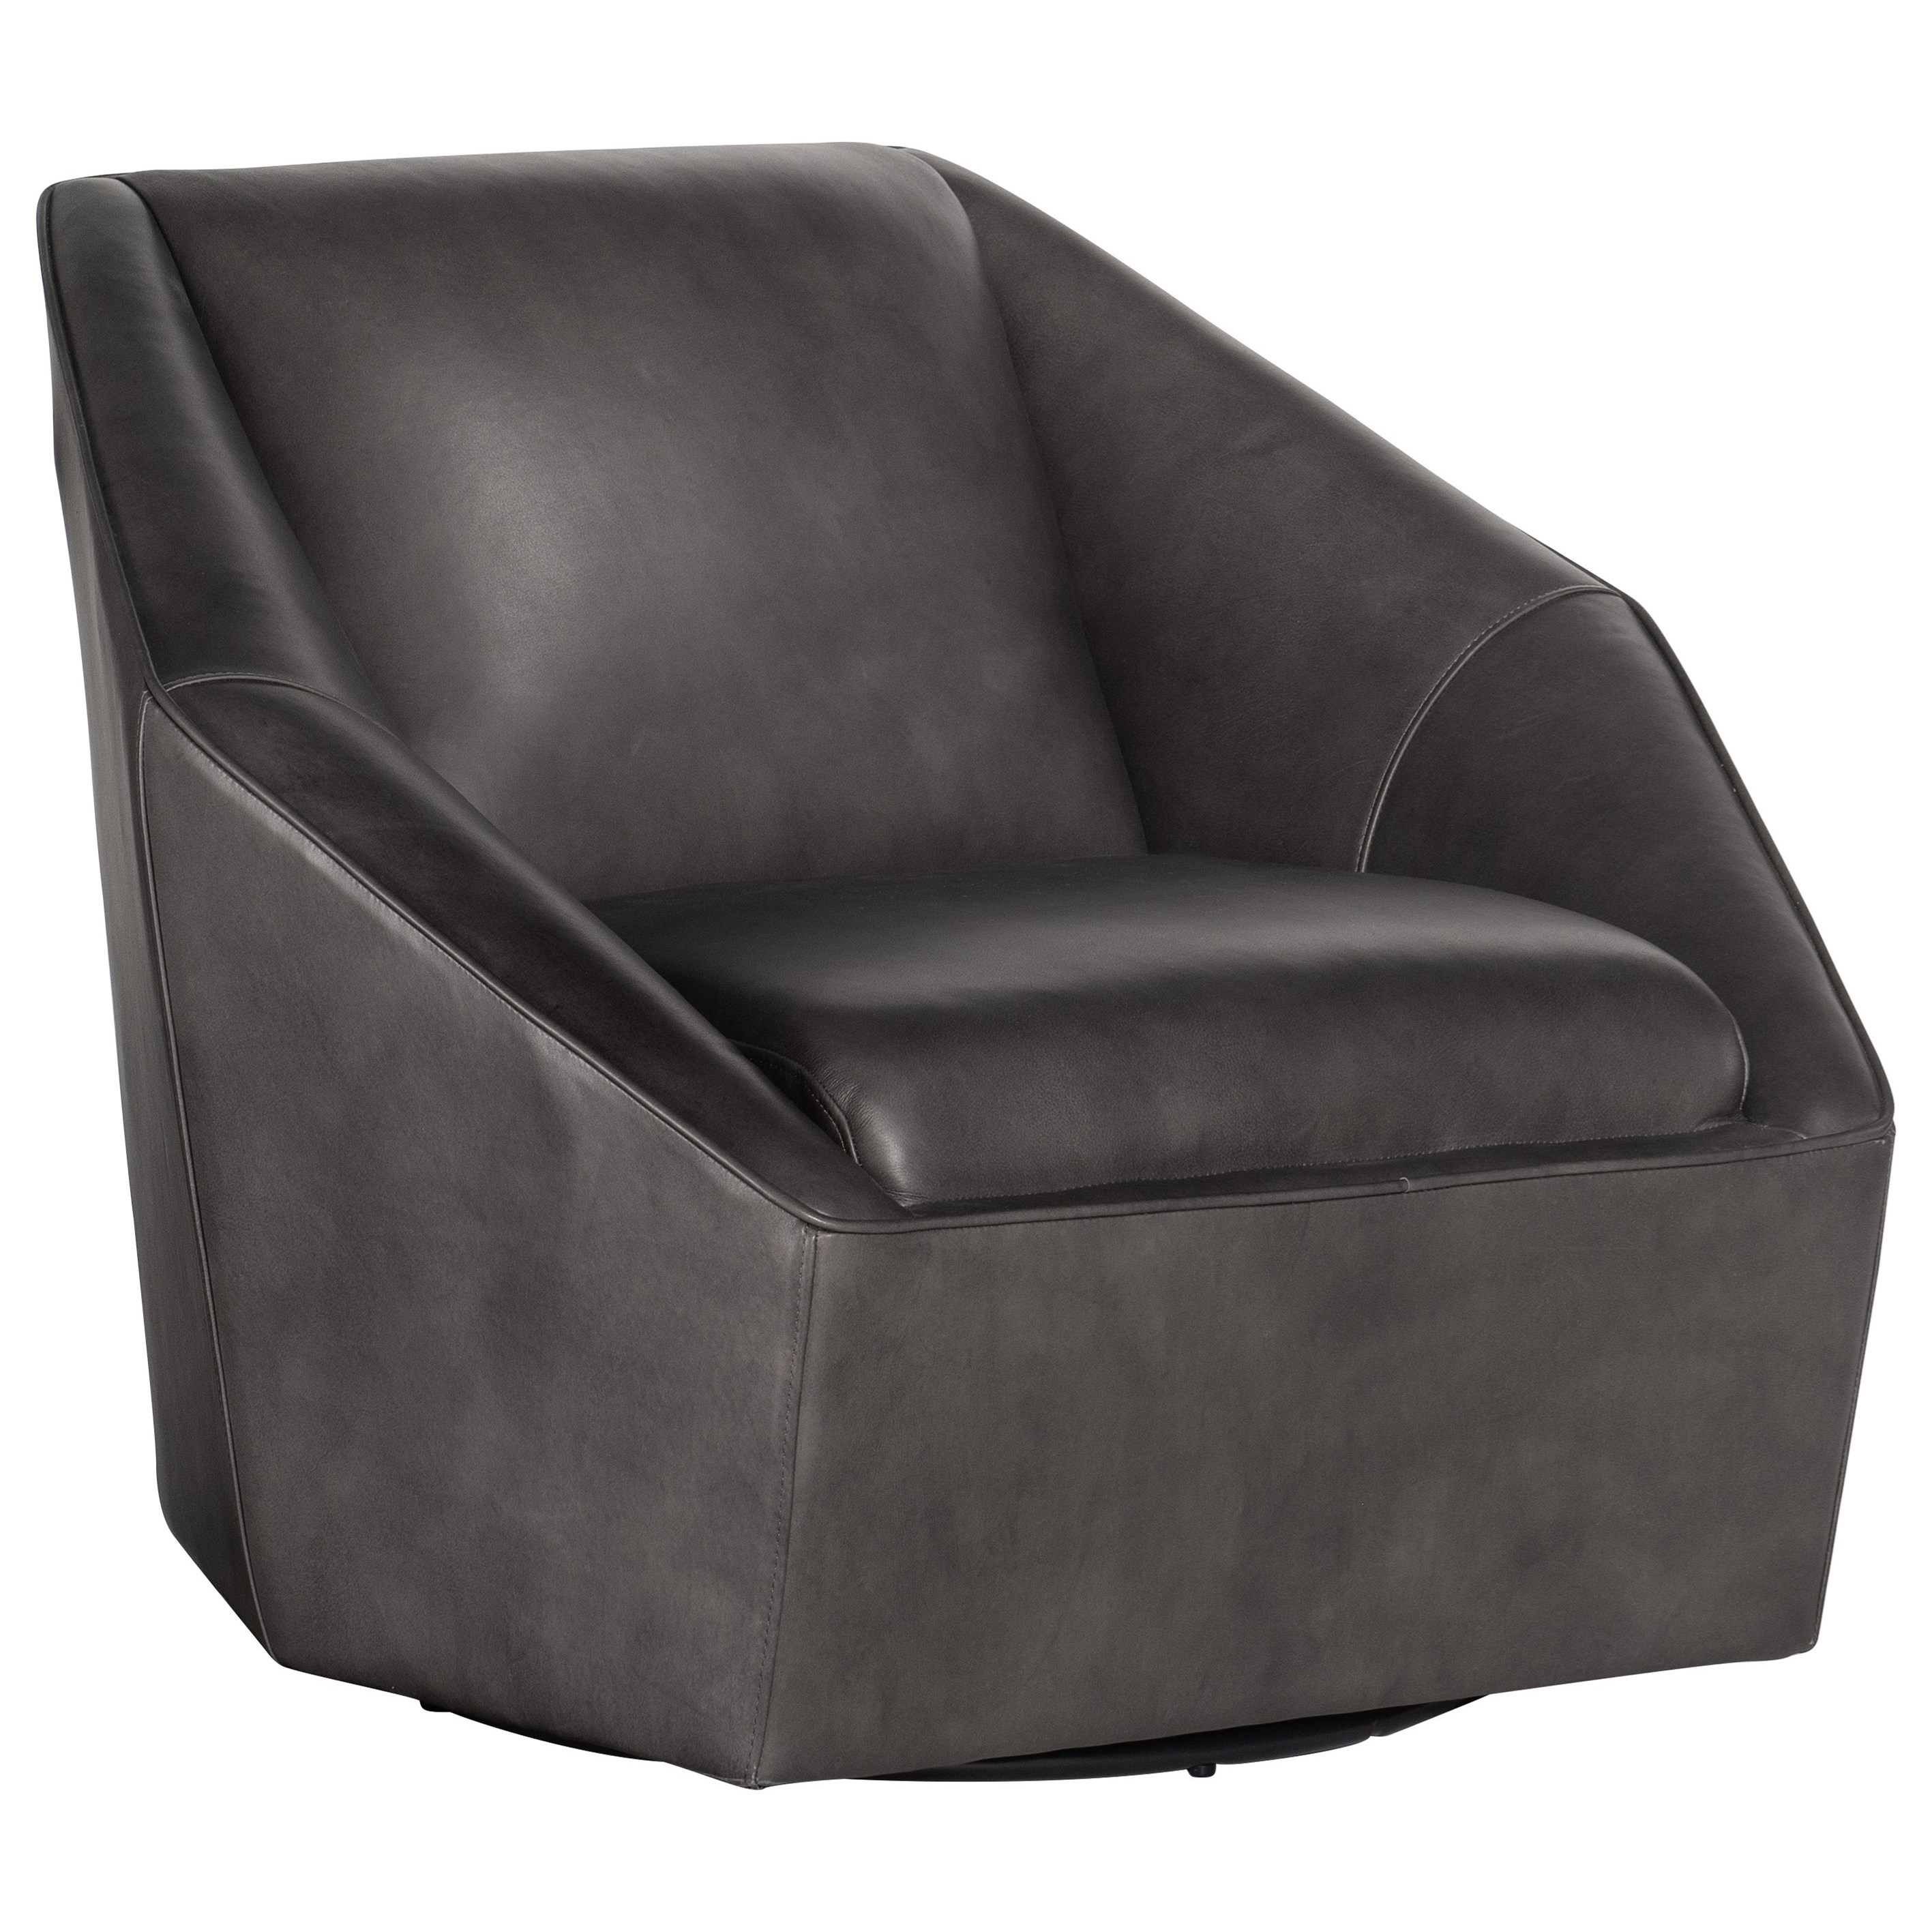 Picture of: Hooker Furniture Club Chairs Contemporary Hepta Swivel Club Chair Pedigo Furniture Upholstered Chairs